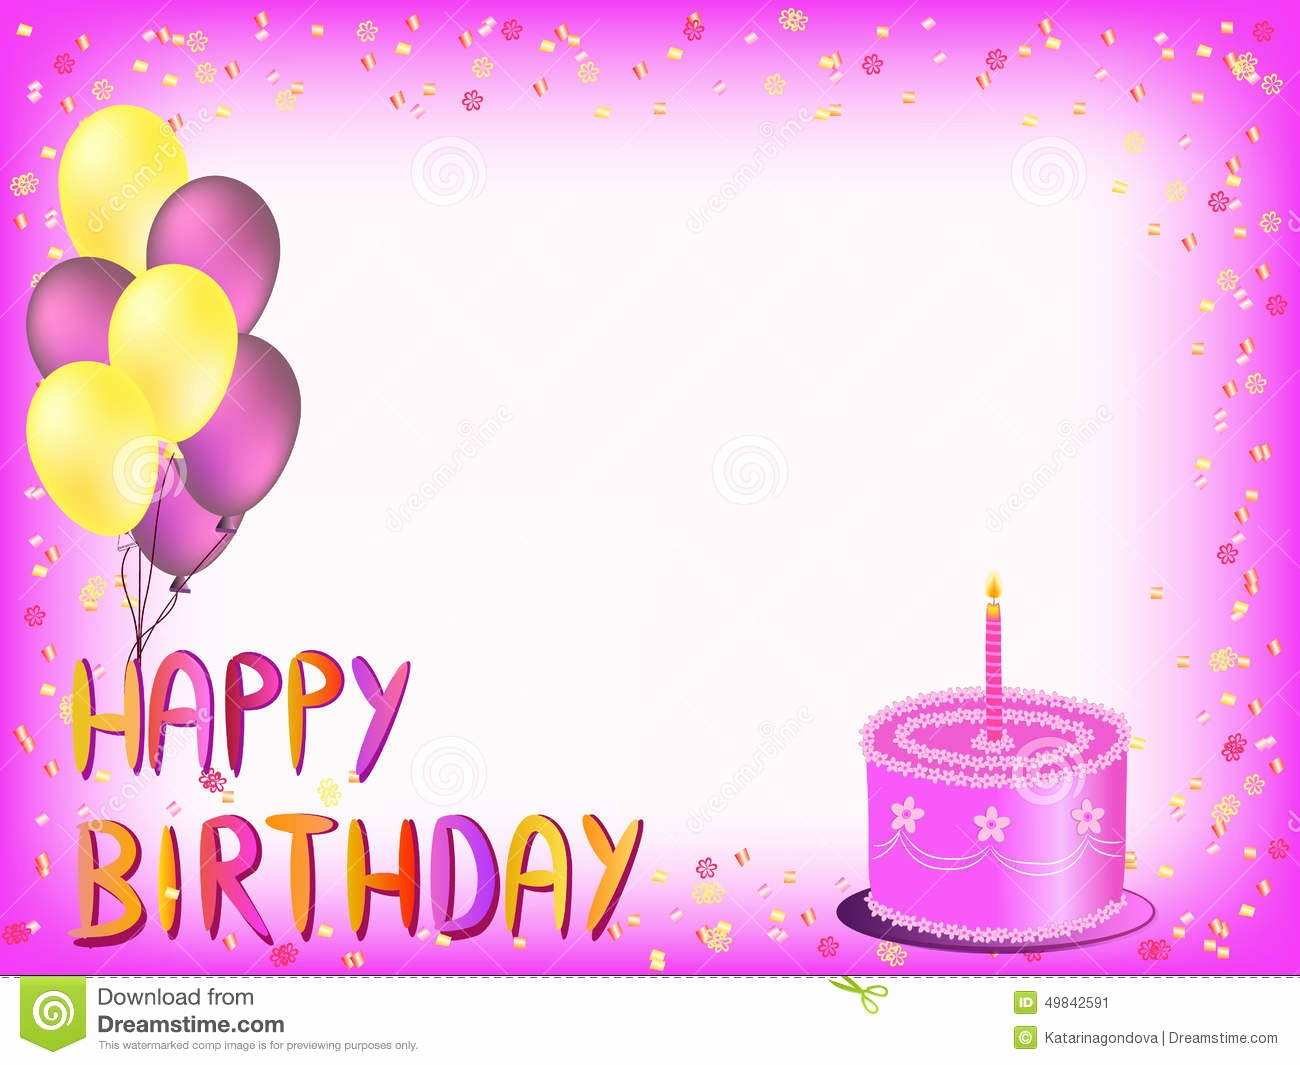 birthday greetings images download ; birthday-greeting-cards-download-new-download-happy-birthday-greetings-of-birthday-greeting-cards-download